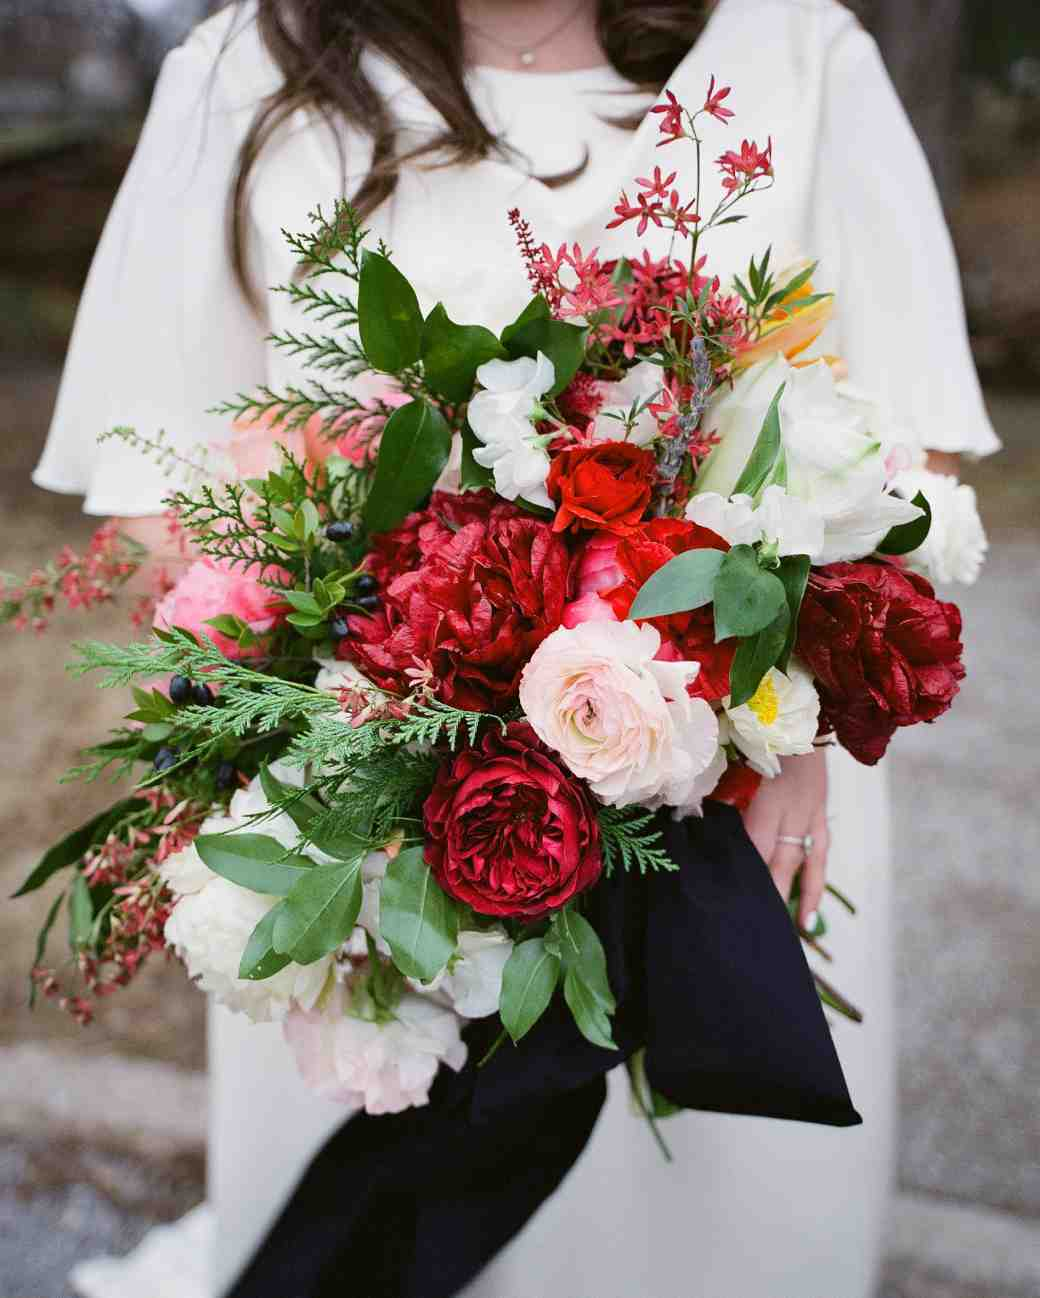 Garden roses smilax ranunculus festival bush tulips poppies astilbe peonies and - Red garden rose bouquet ...